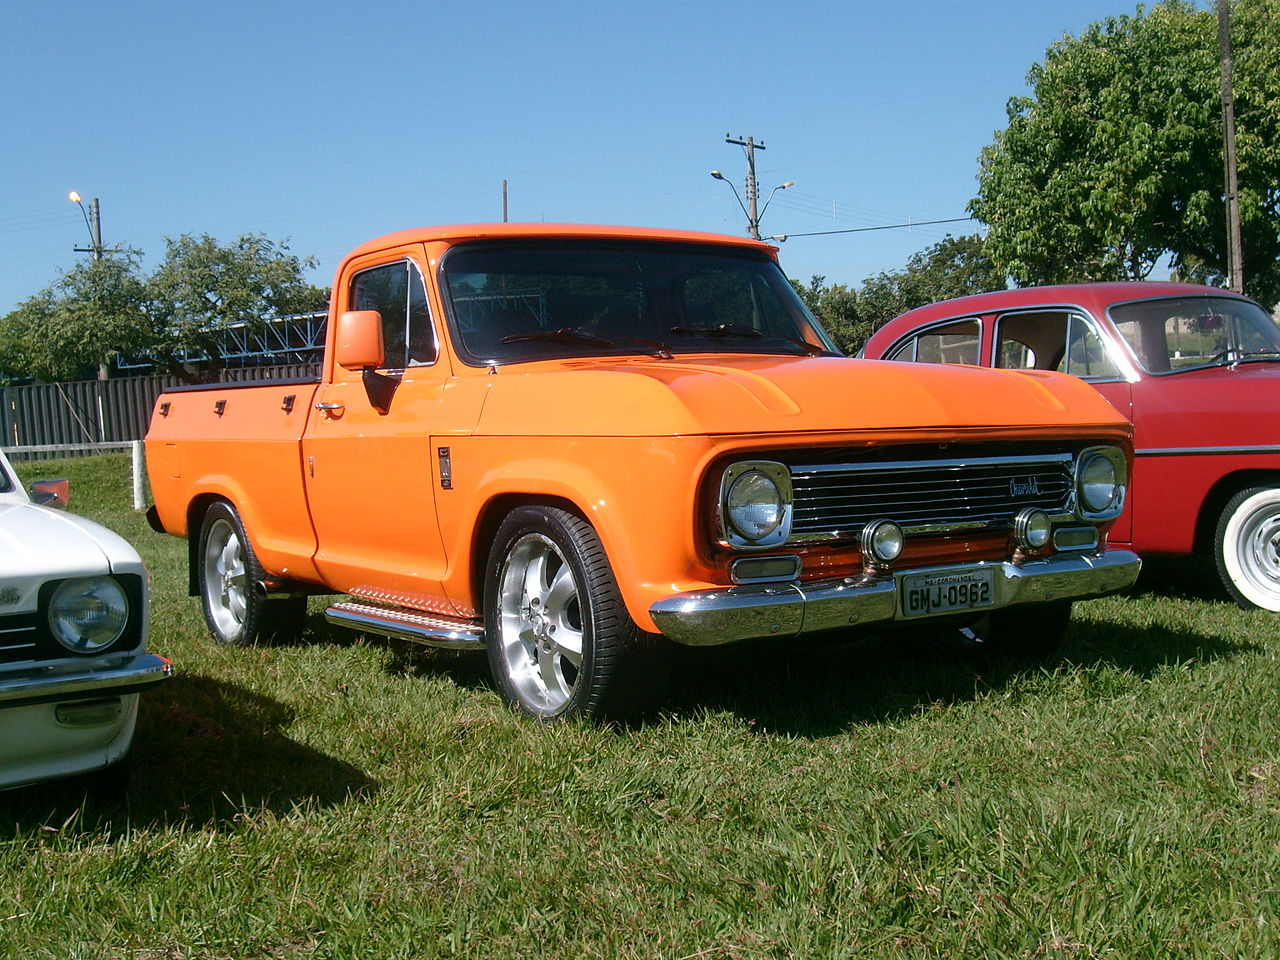 All Chevy chevy c10 wiki : File:Chevrolet C10 (front).jpg - Wikimedia Commons